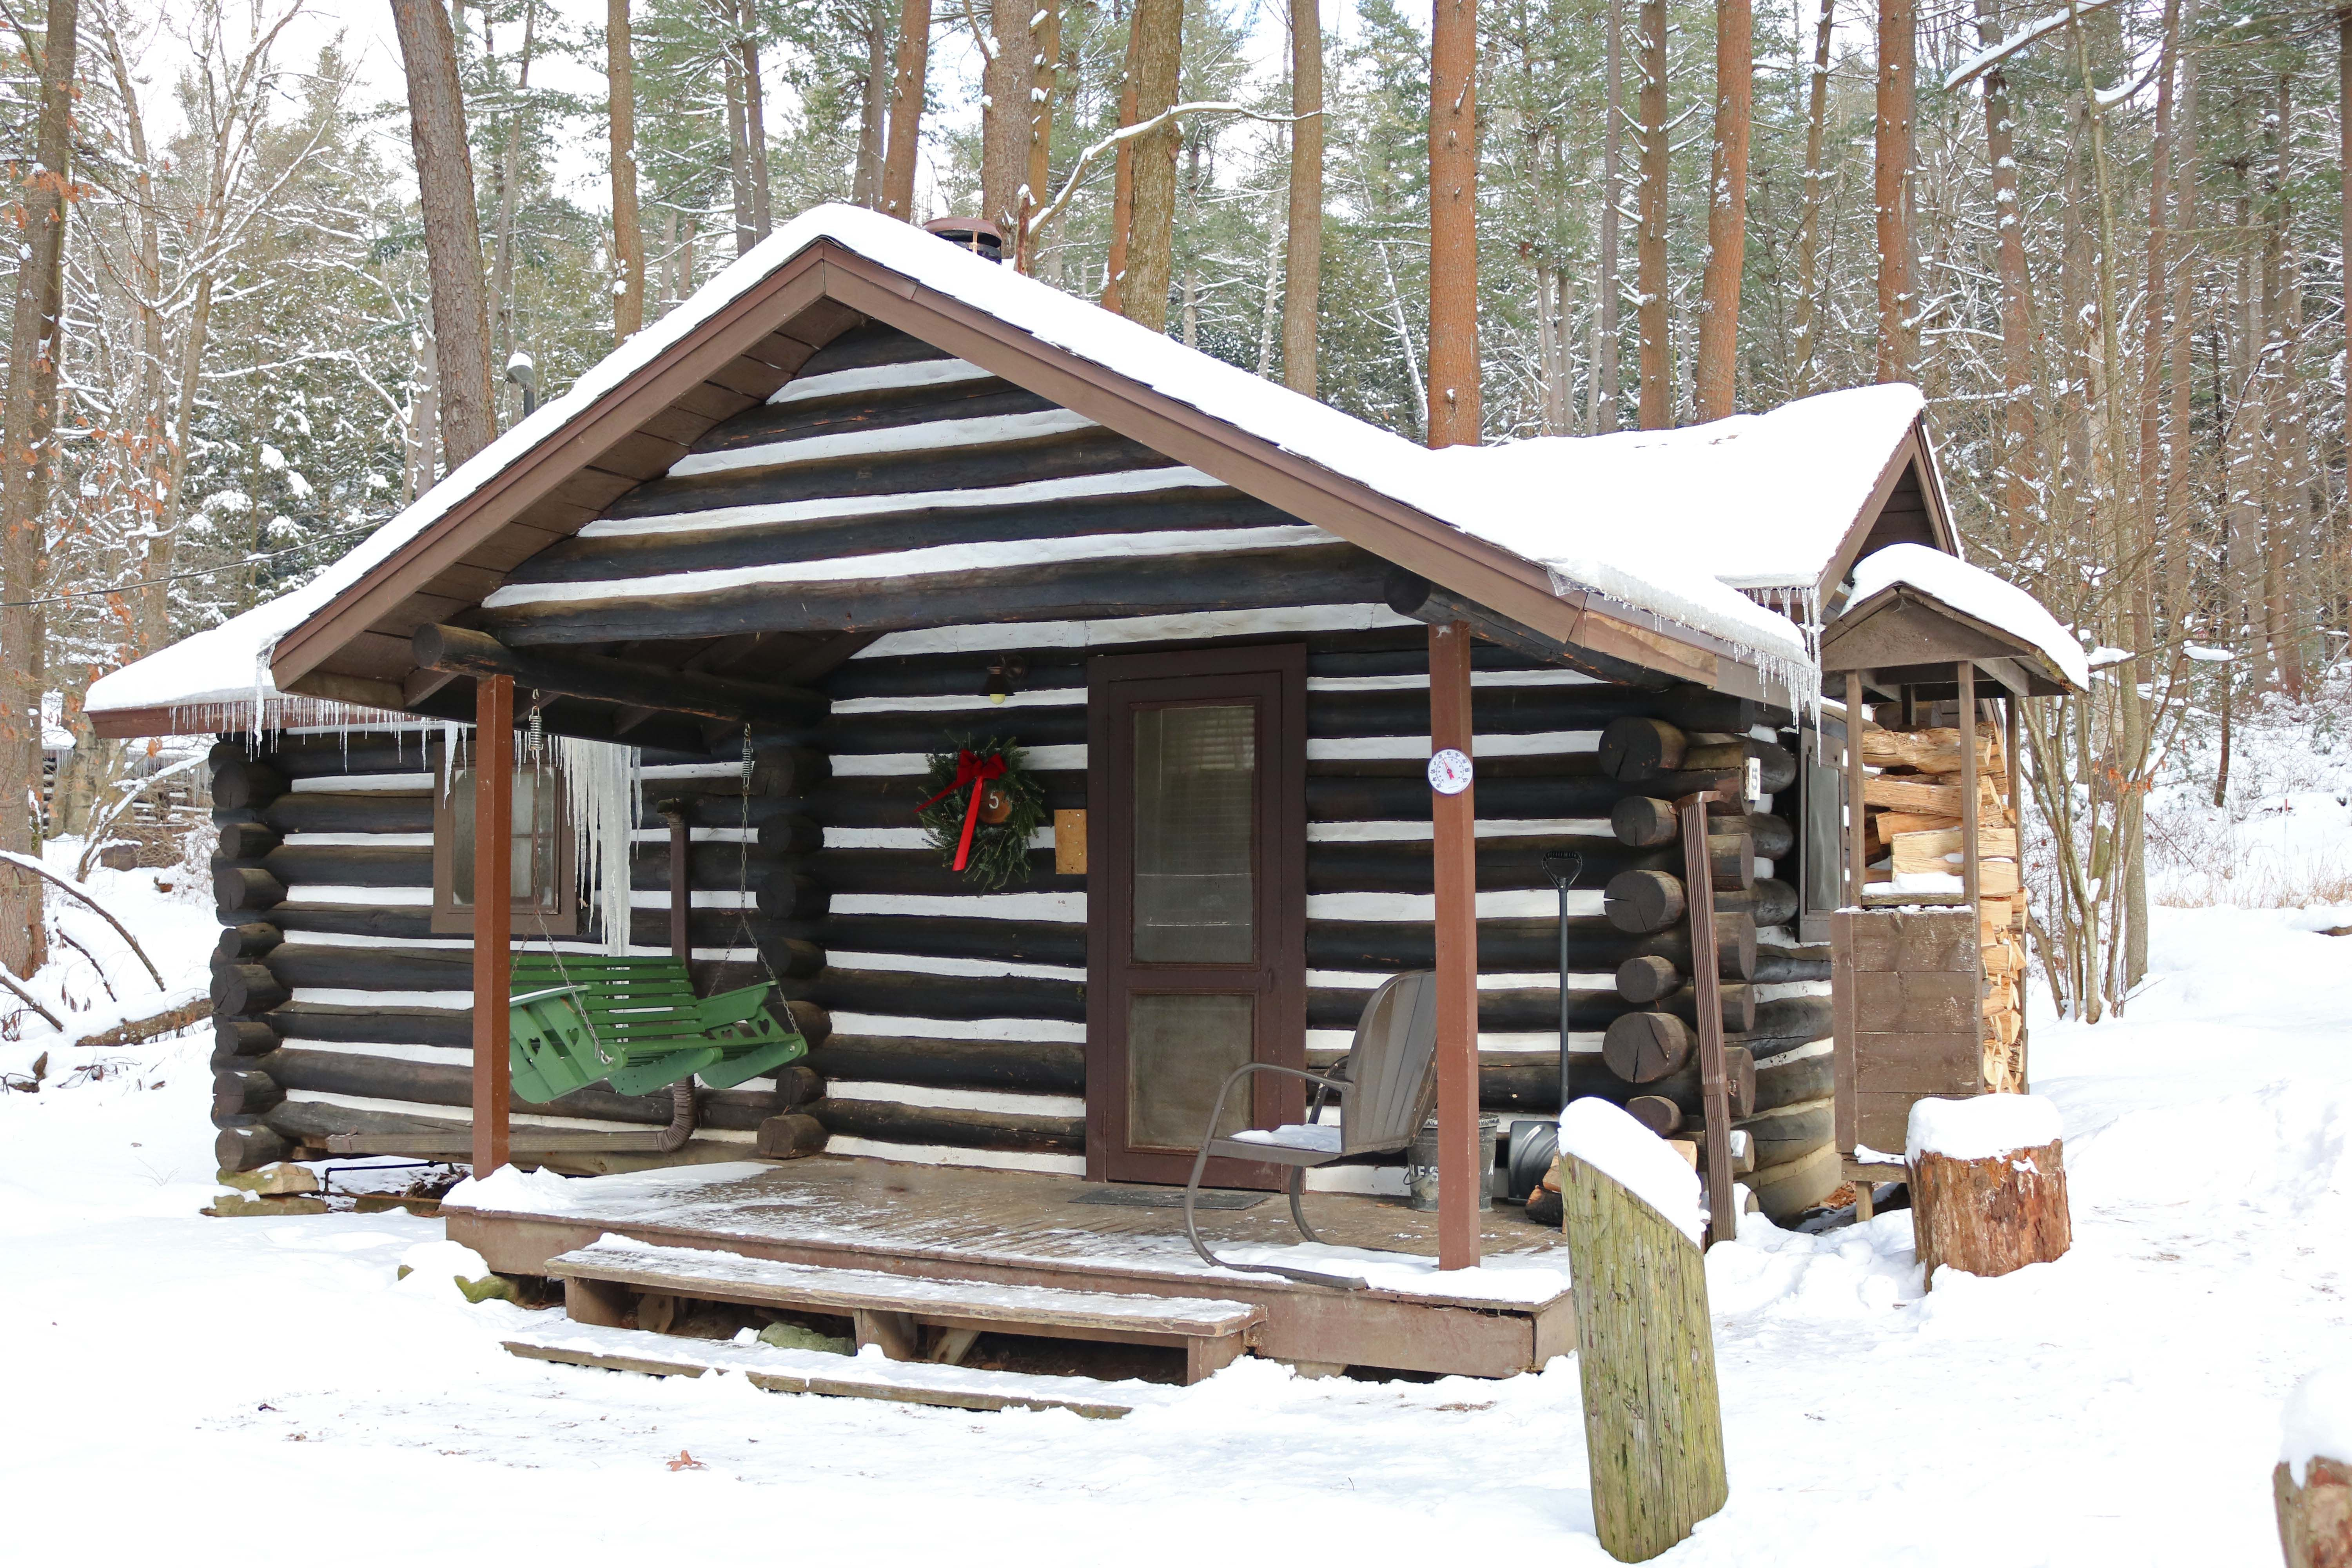 Rustic Log Cabins Cooks Forest Cabins 1 A Genuine Rustic Log Cabin Built In The 1920 S Cabin Forest Cabin Log Cabin